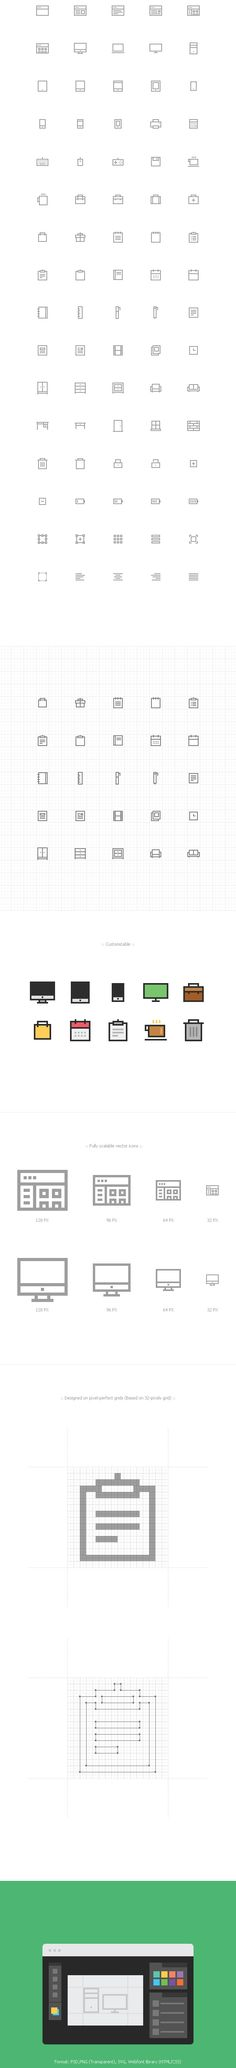 Free Download : Pixelvicon Icon Set (80 Icons – PSD, PNG, SVG, Webfont)